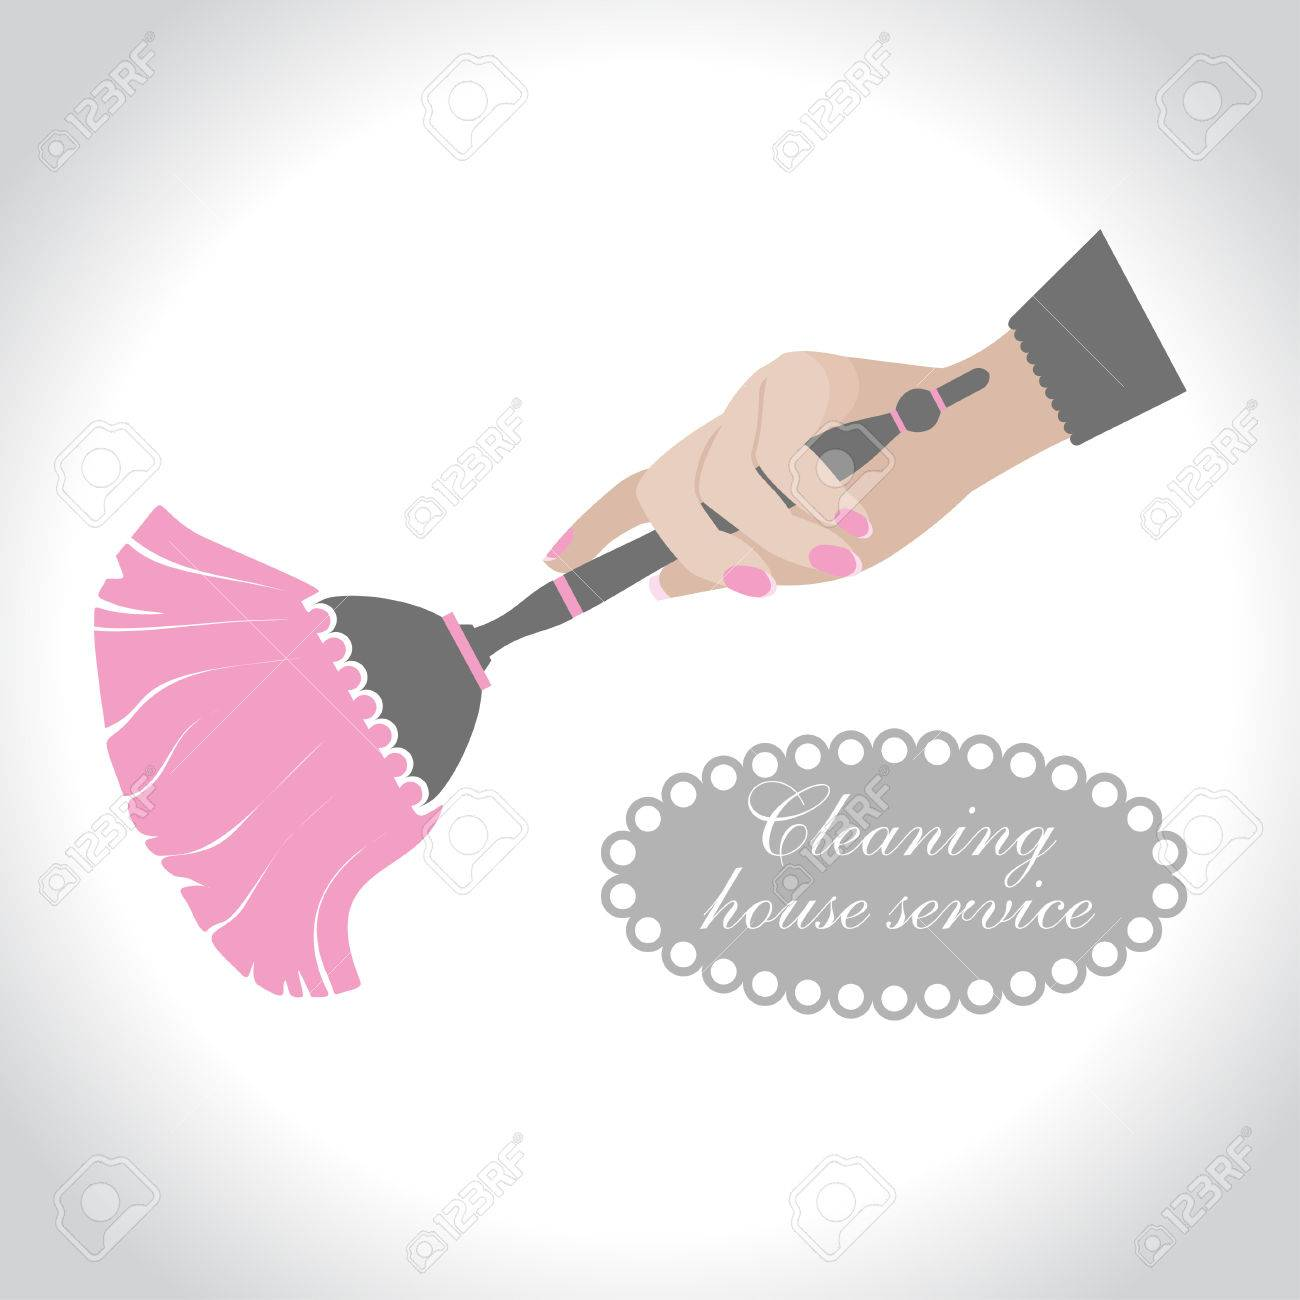 house cleaning, vintage logo  Female hand holding a broom for